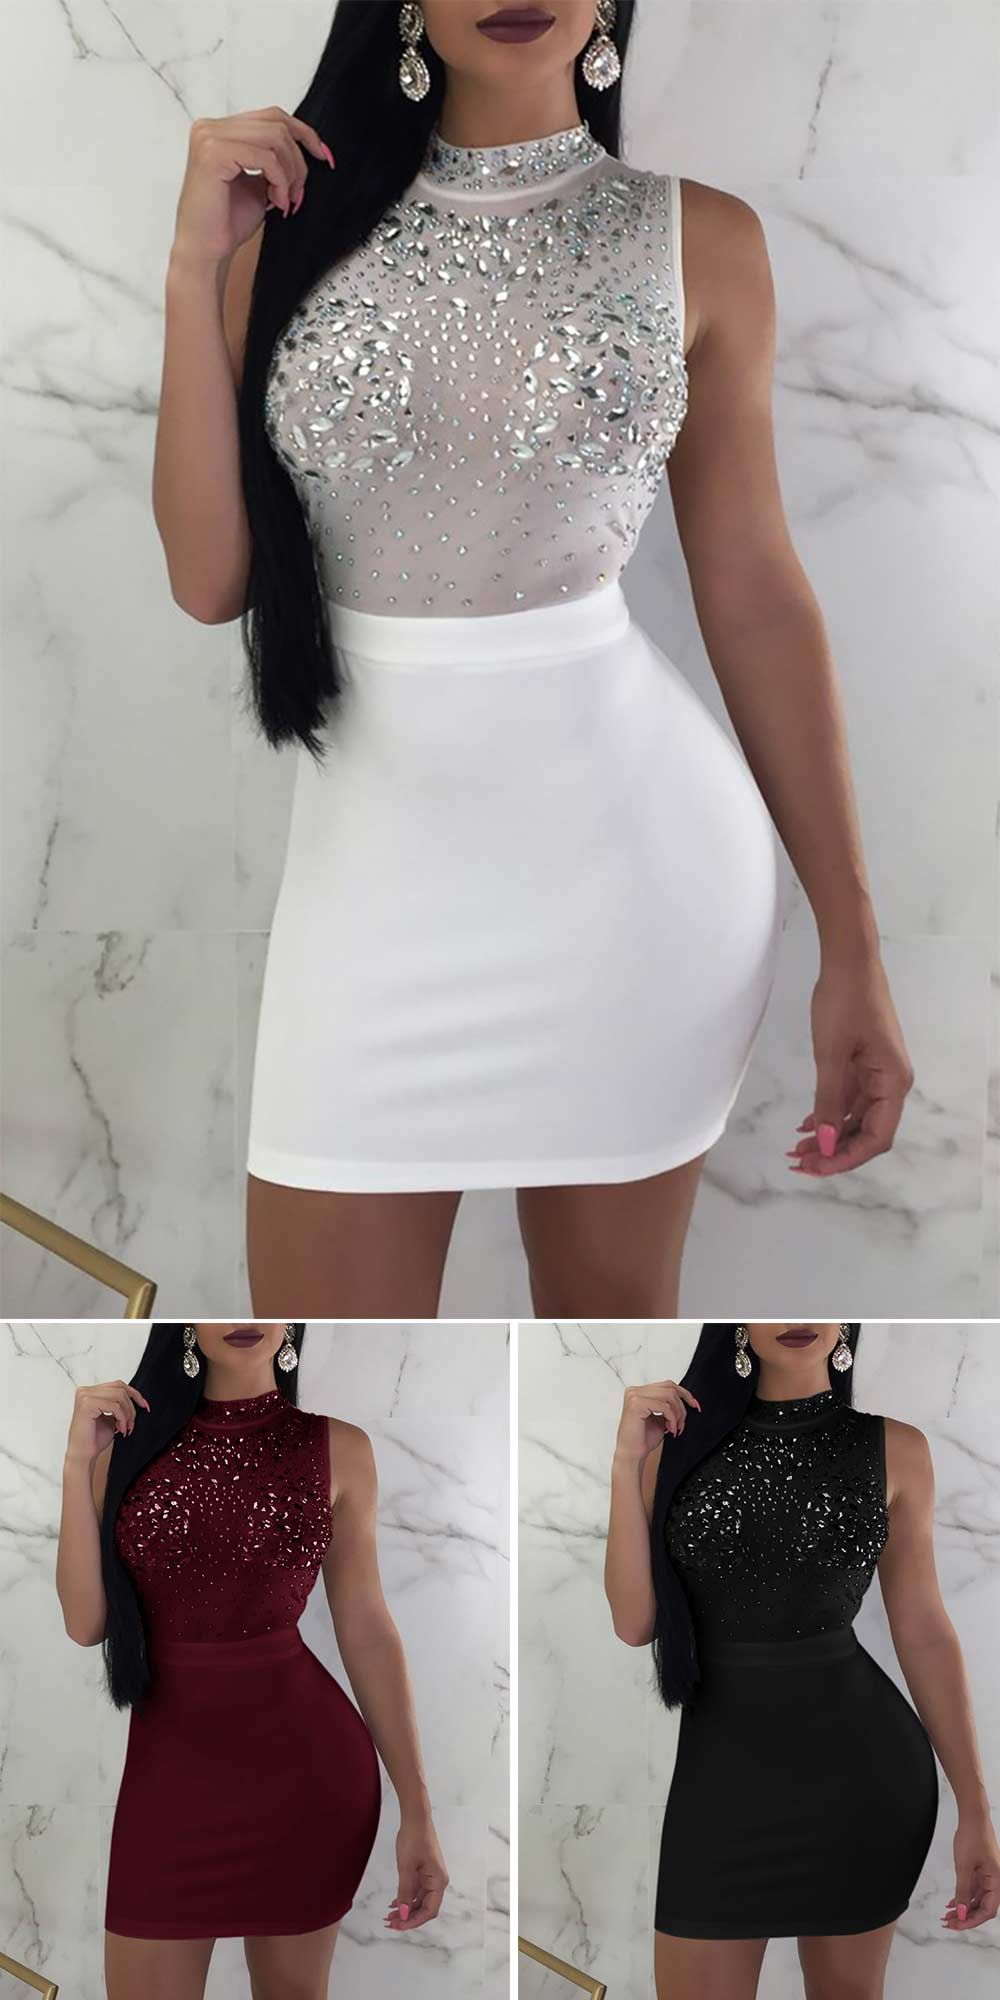 96f0fe5985 Fashion  summer outfits  party dress  Shiny Embellished Mesh Splicing Bodycon  Dress Party Dresses